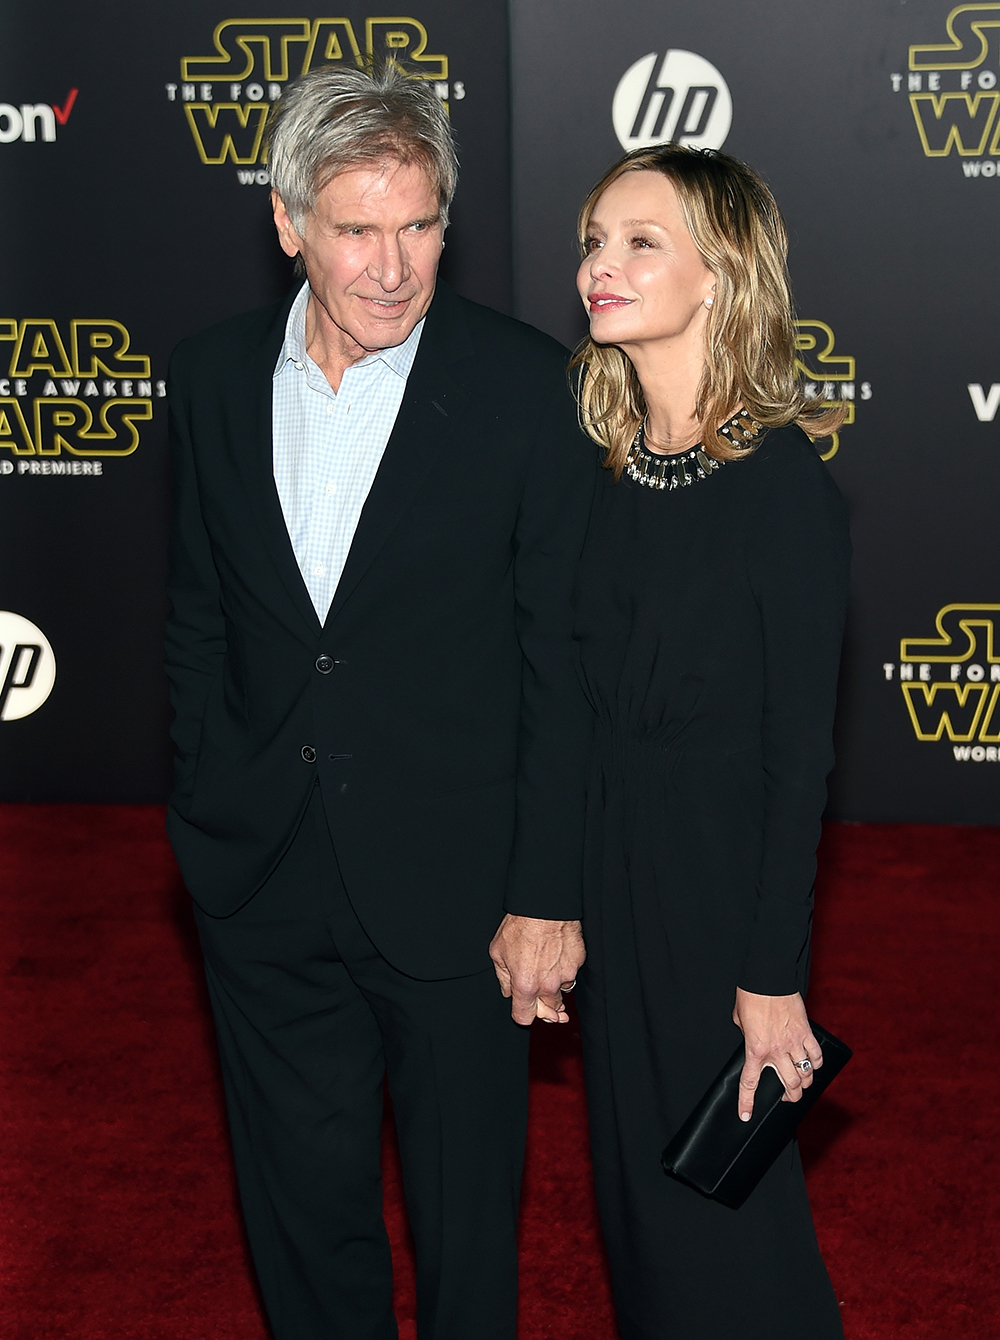 """HOLLYWOOD, CA - DECEMBER 14: Actor Harrison Ford (L) and actress Calista Flockhart attend the premiere of Walt Disney Pictures and Lucasfilm's """"Star Wars: The Force Awakens"""" at the Dolby Theatre on December 14, 2015 in Hollywood, California. Ethan Miller/Getty Images/AFP"""